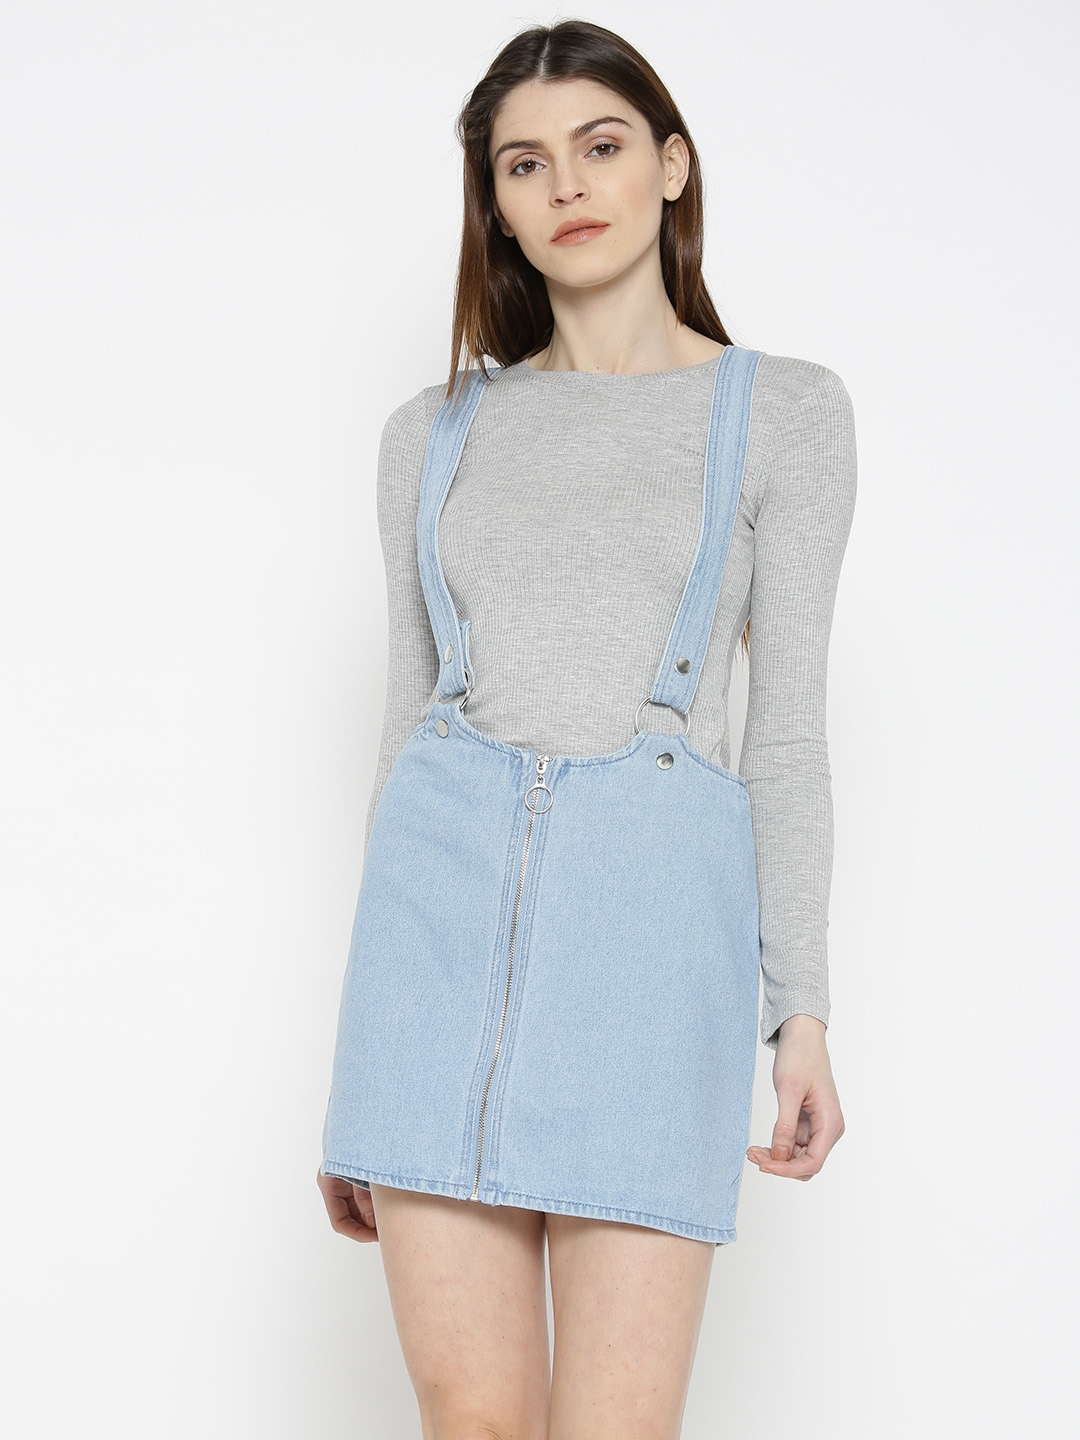 53a9edc68f Buy FOREVER 21 Blue Denim Pencil Skirt With Suspenders - Skirts for ...